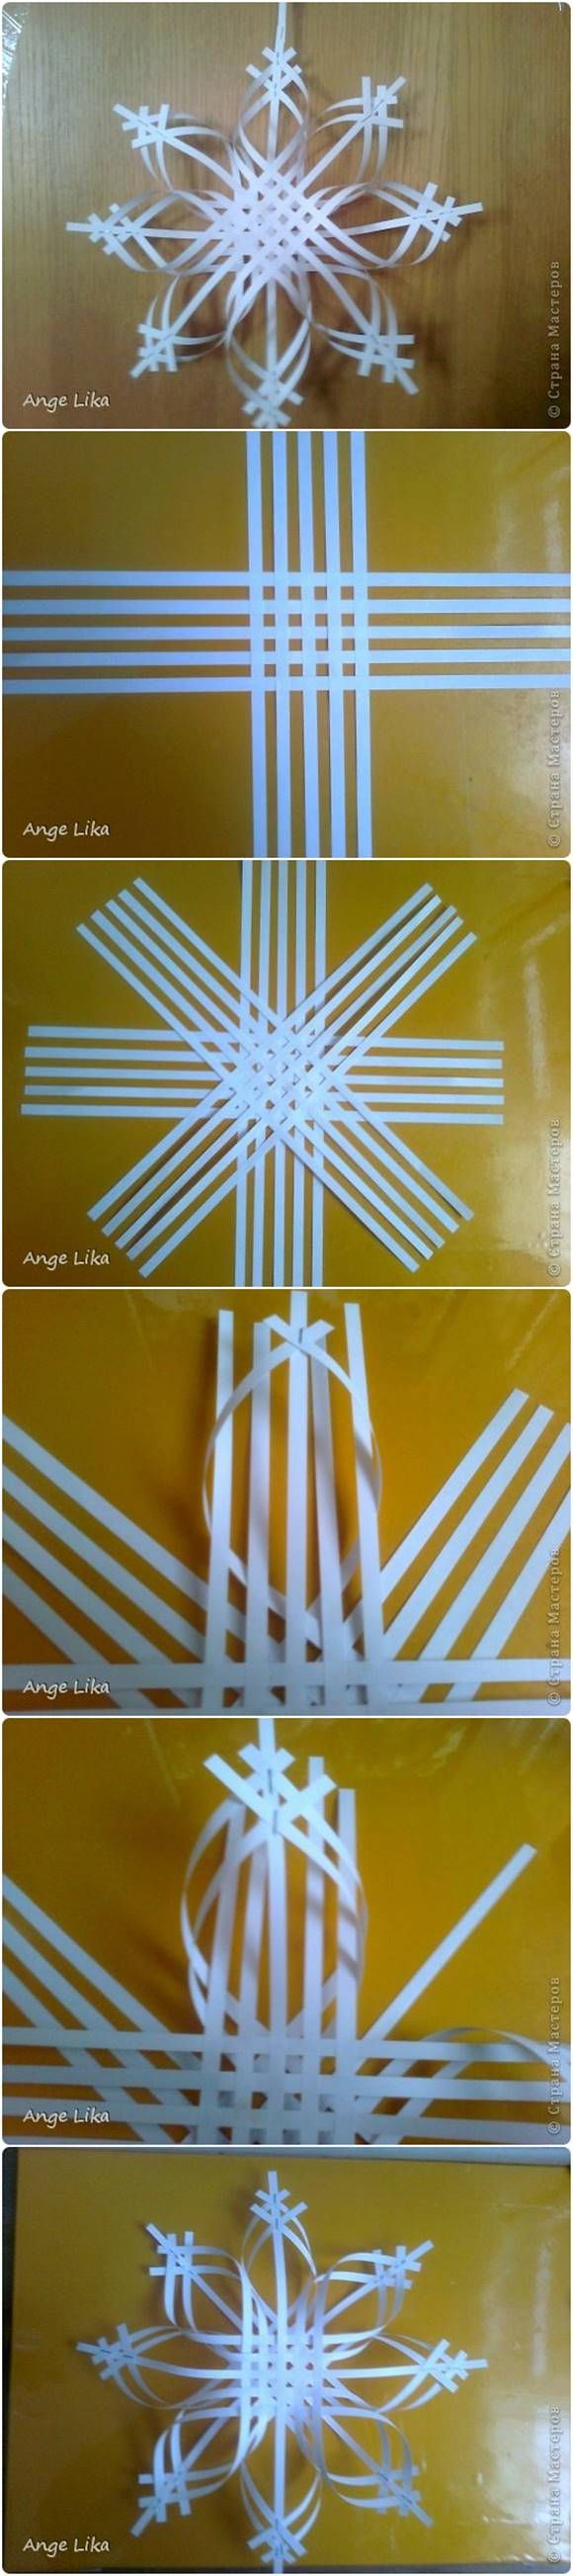 DIY 3D Paper Snowflake Christmas Ornament…